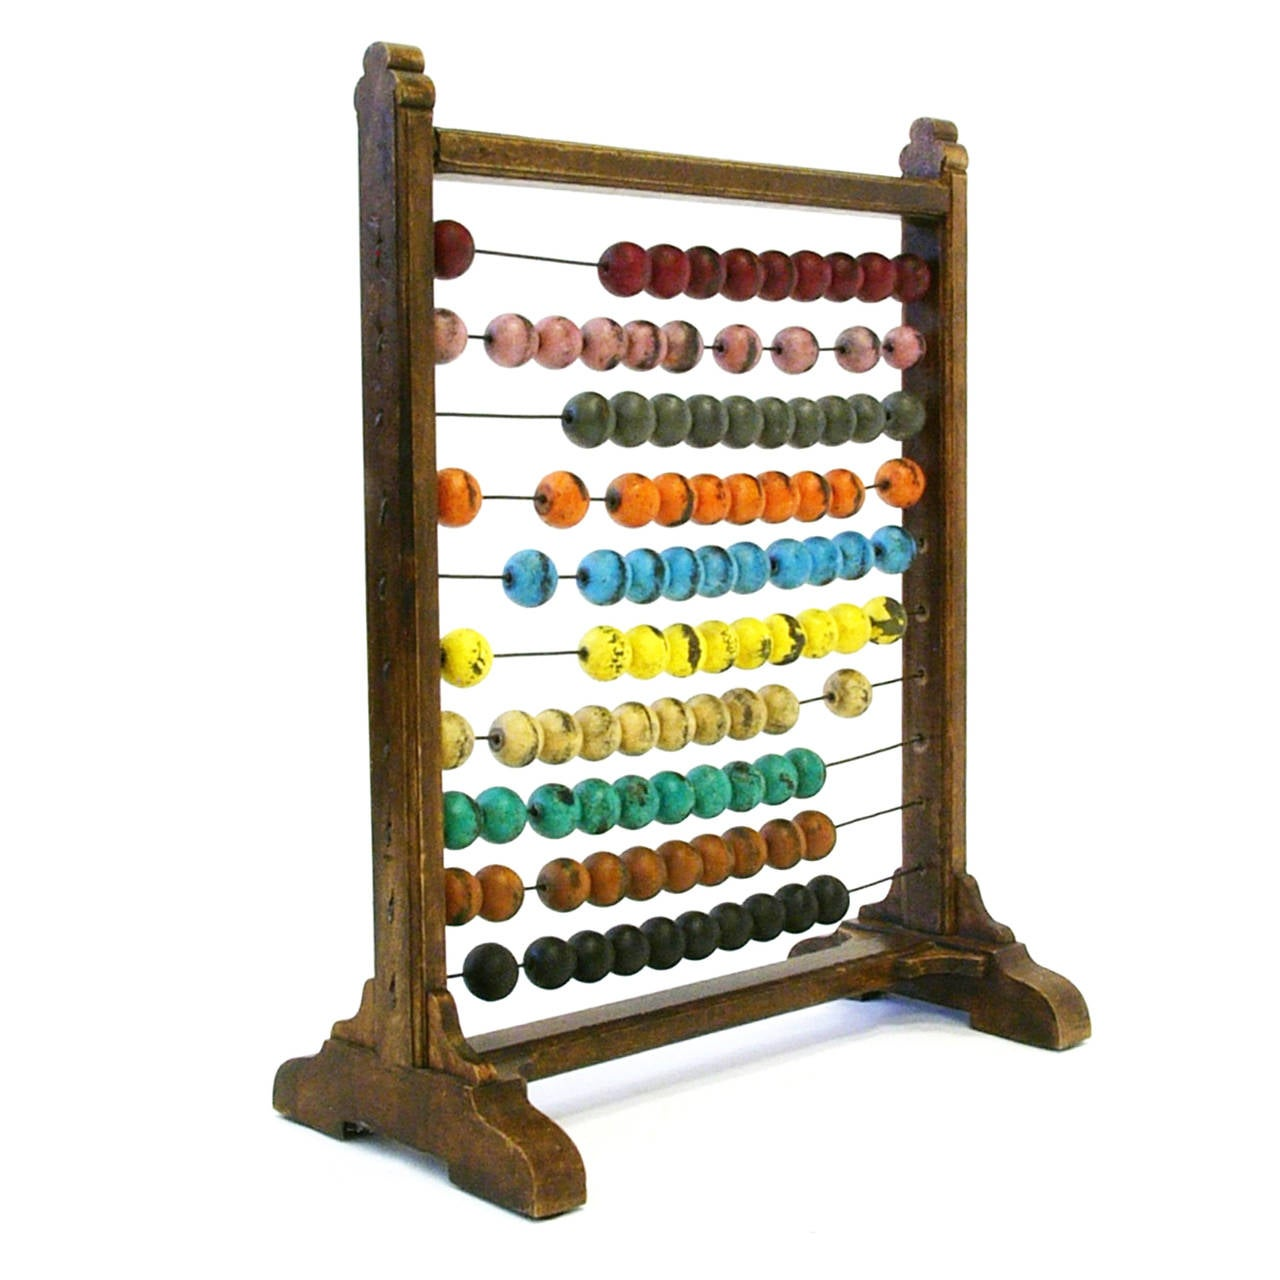 Colorful Furniture For Sale : abacus2l from www.scrapinsider.com size 1280 x 1280 jpeg 119kB